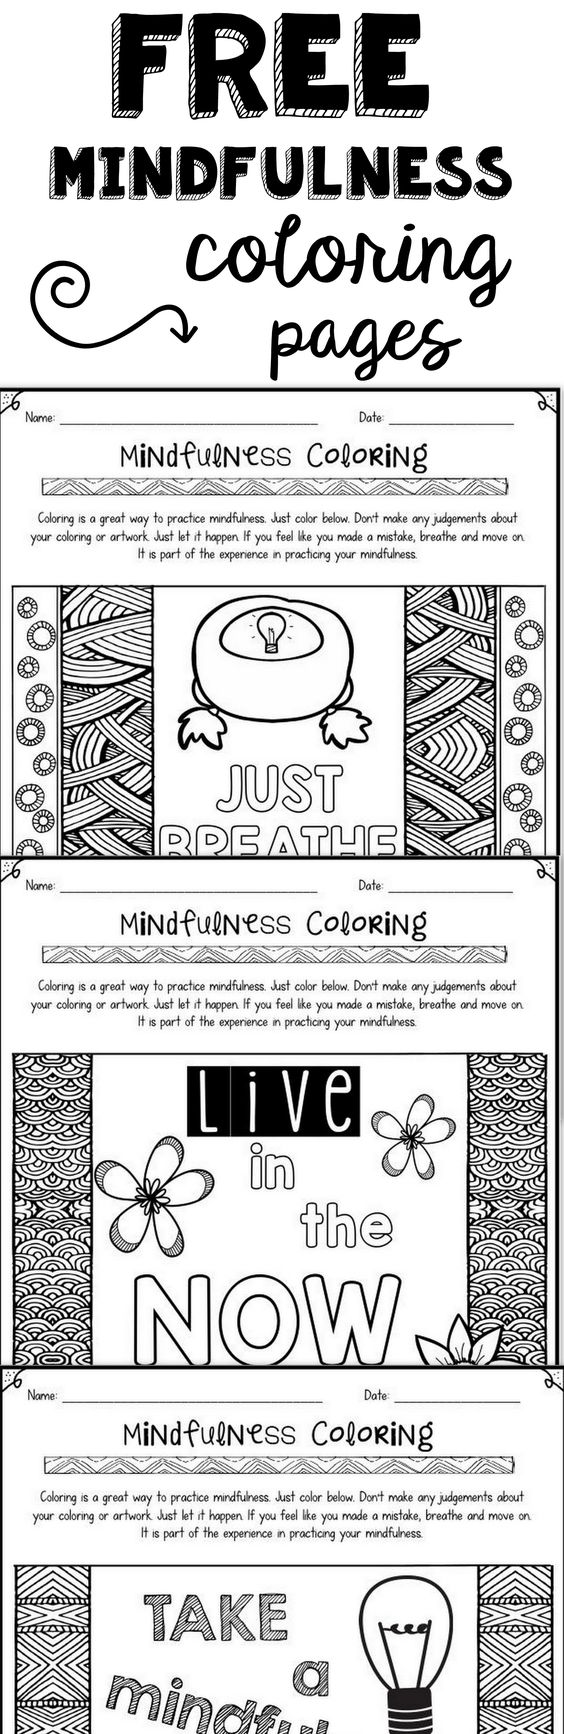 Free coloring pages growth mindset - Free Mindfulness Coloring Pages To Help With Relaxation And Positive Thinking